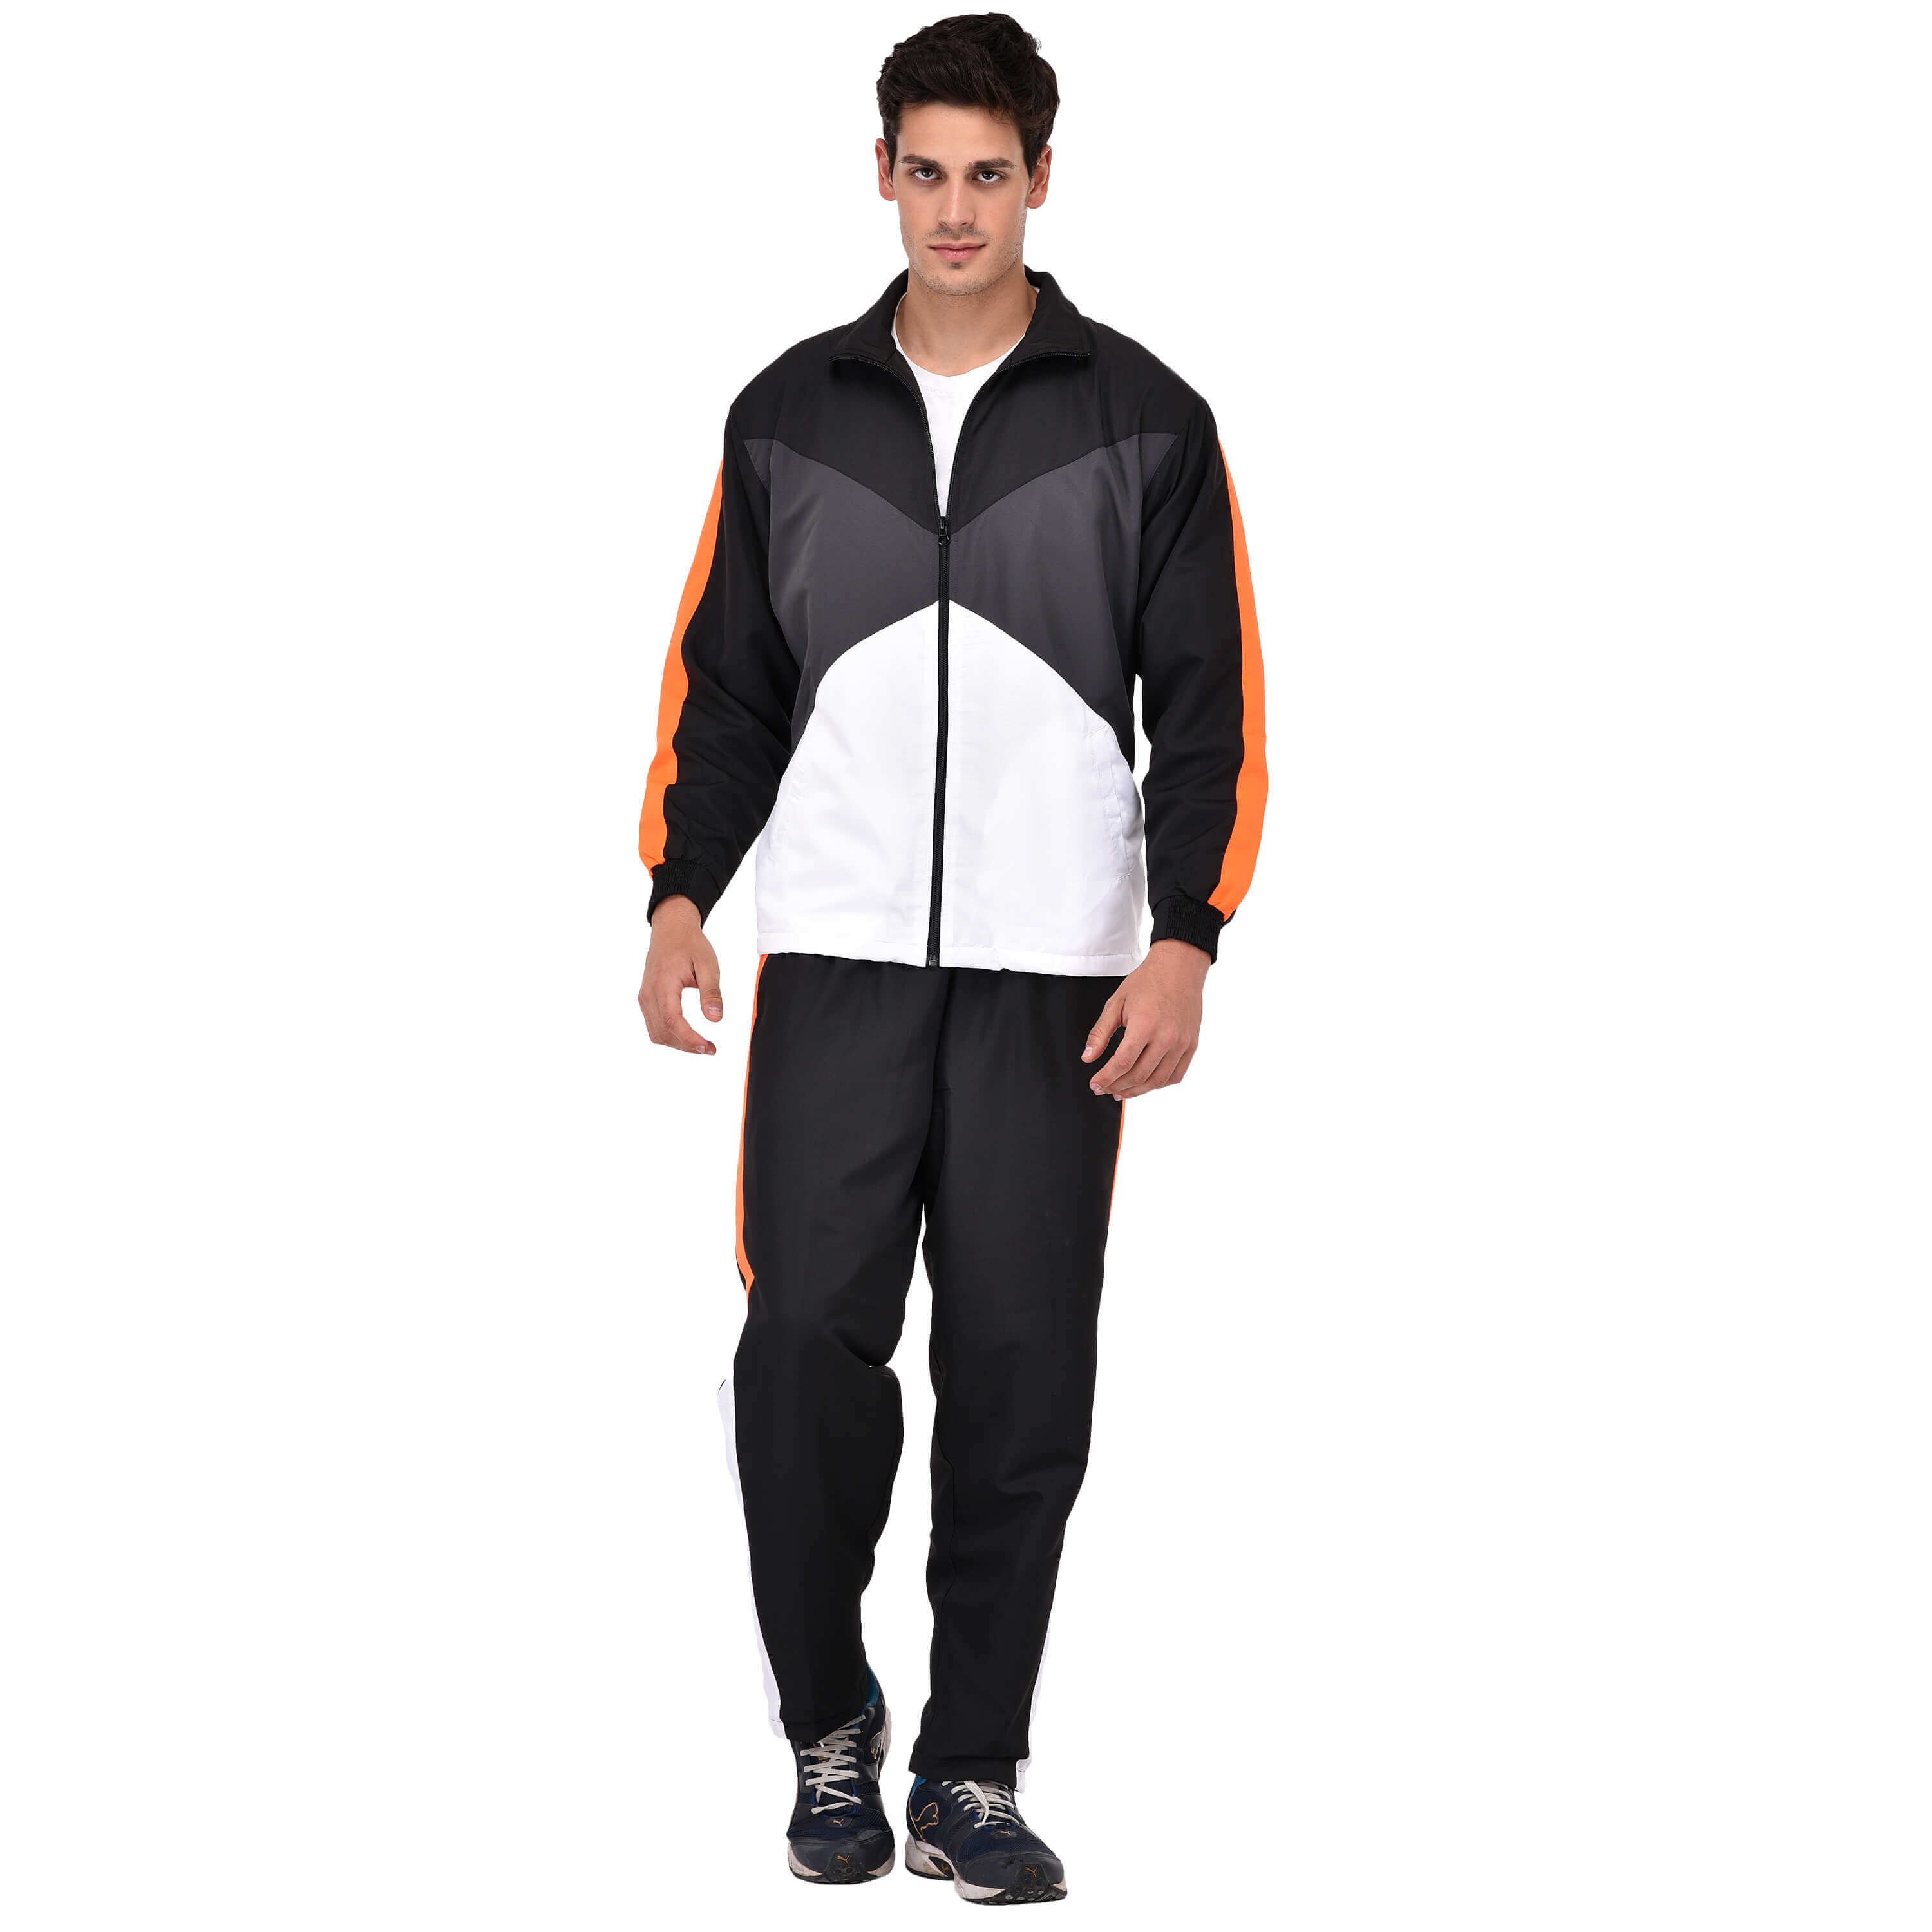 Sports Tracksuit Manufacturers in Peru